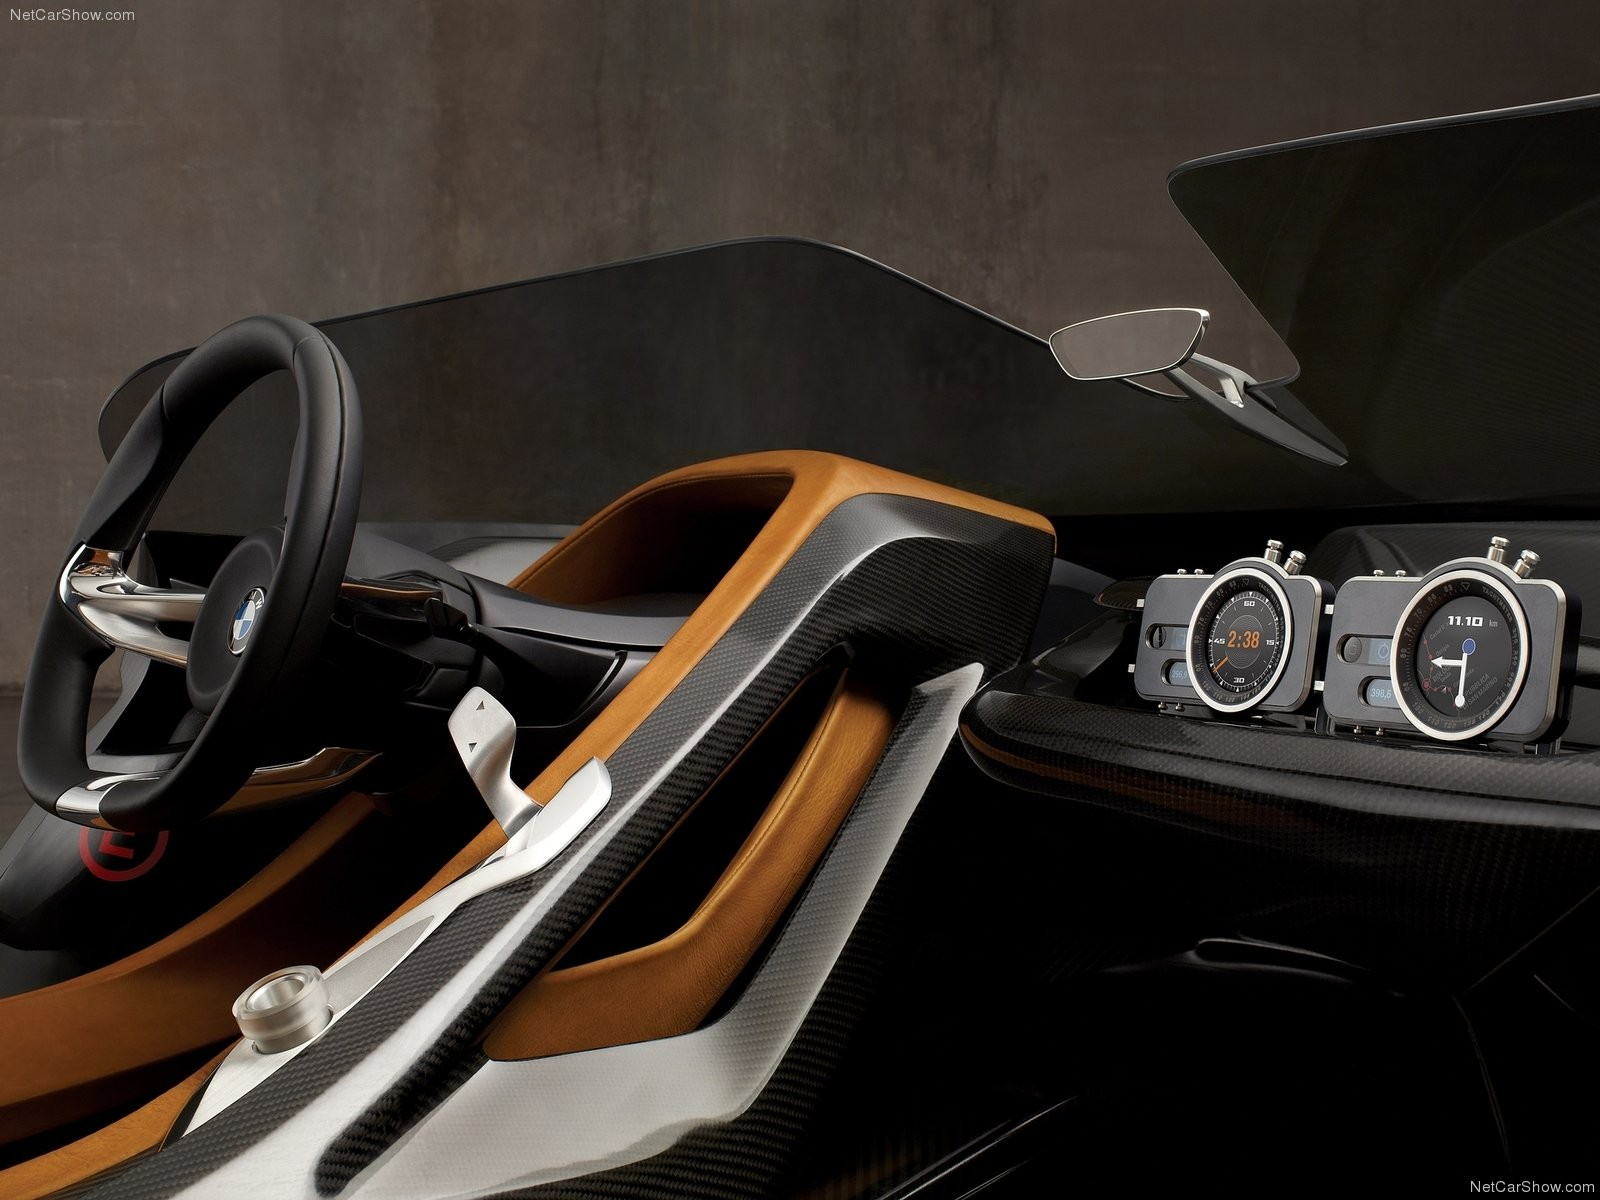 Inside of BMW 328 Hommage - HD Wallpaper